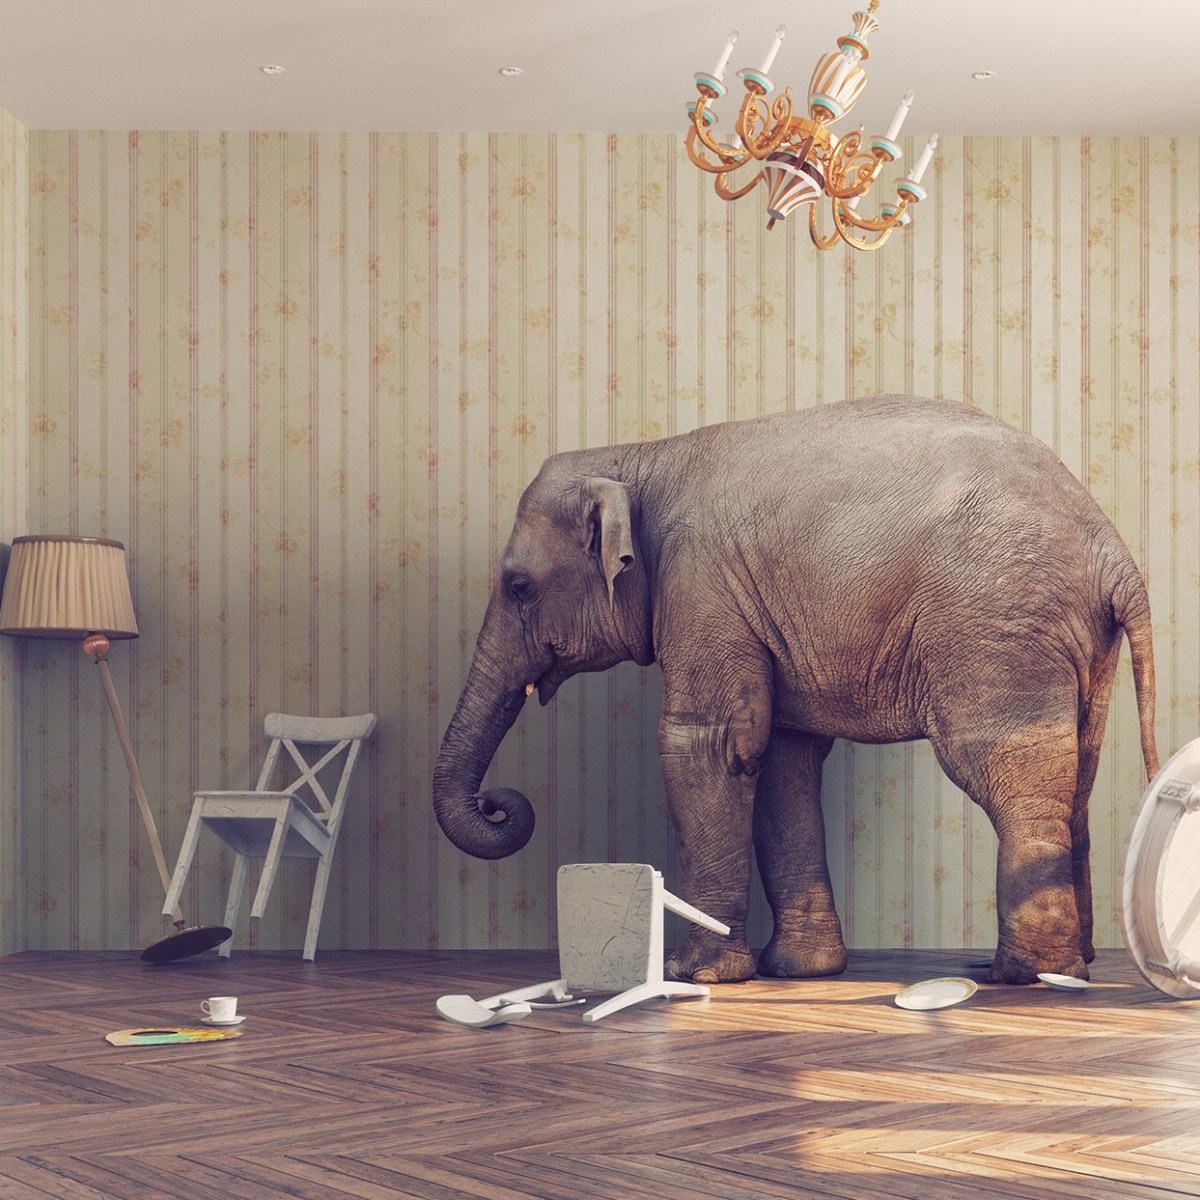 Six Elephants in the Room   Concordia Theology